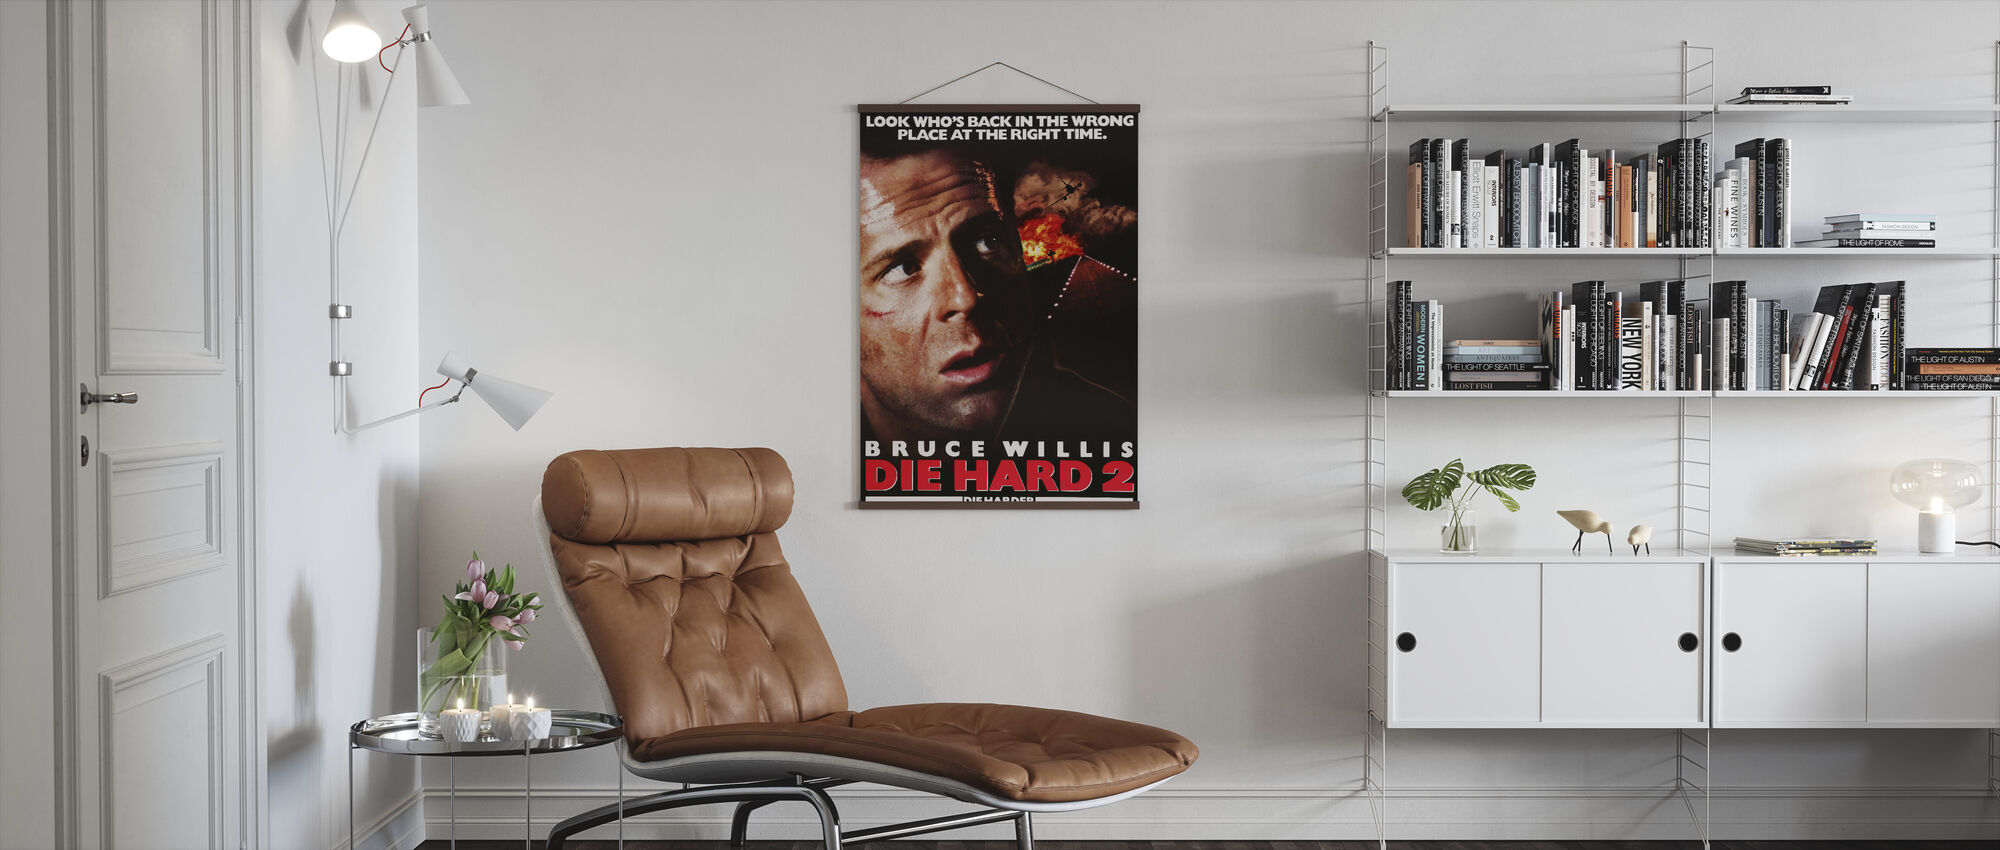 Bruce Willis in Die Hard 2 - Poster - Living Room